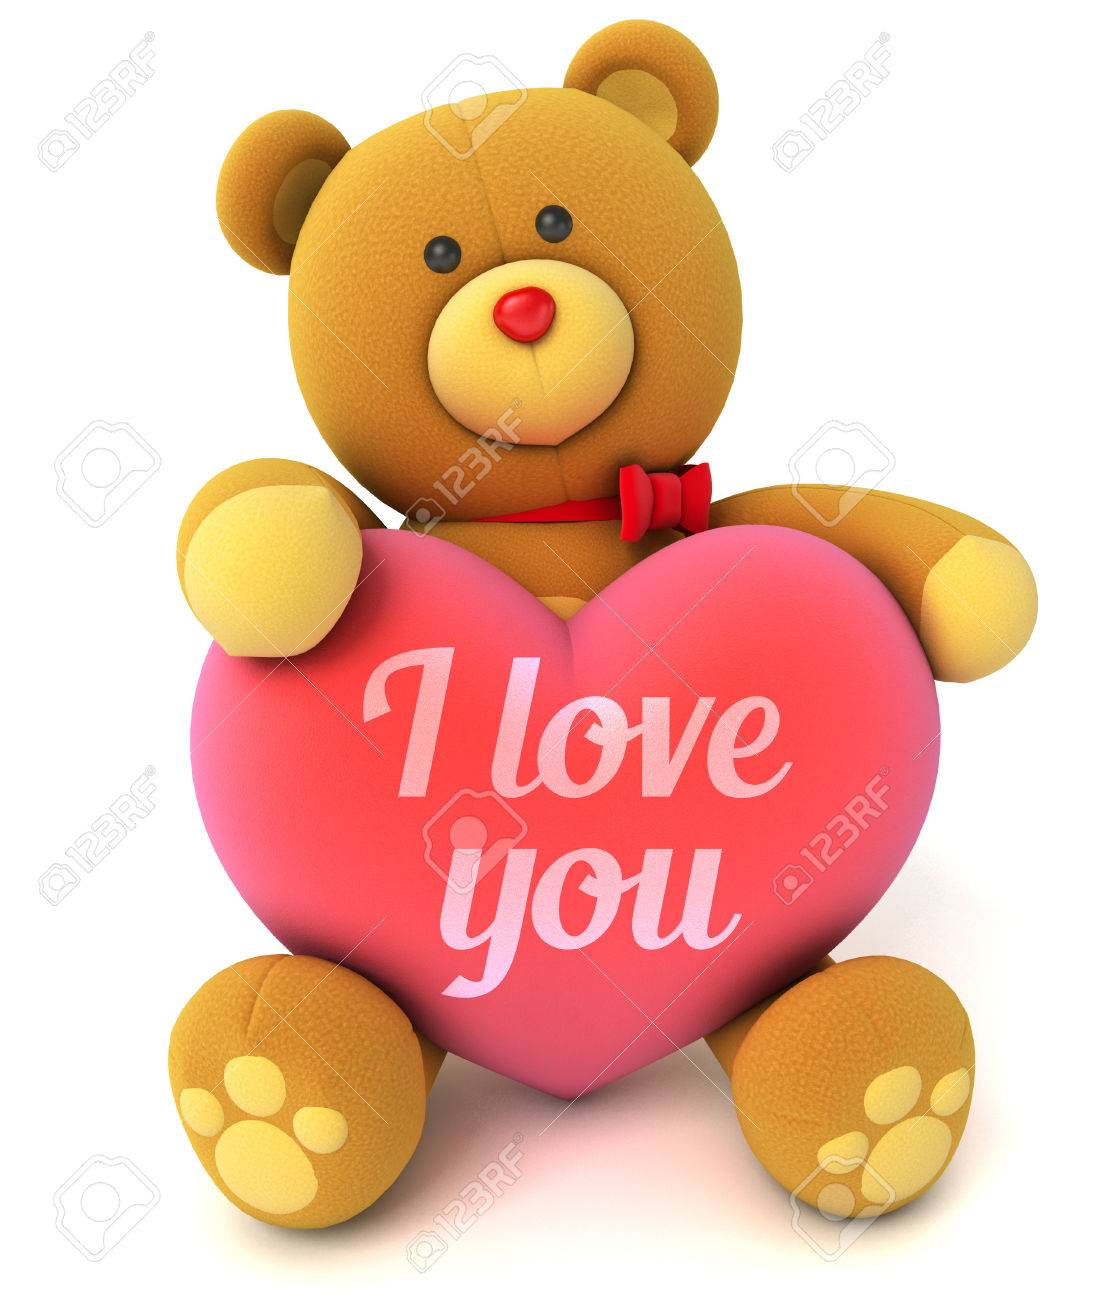 Toy teddy bear holding a heart with the words i love you stock photo toy teddy bear holding a heart with the words i love you congratulation to wedding or valentines day isolated on white background voltagebd Gallery